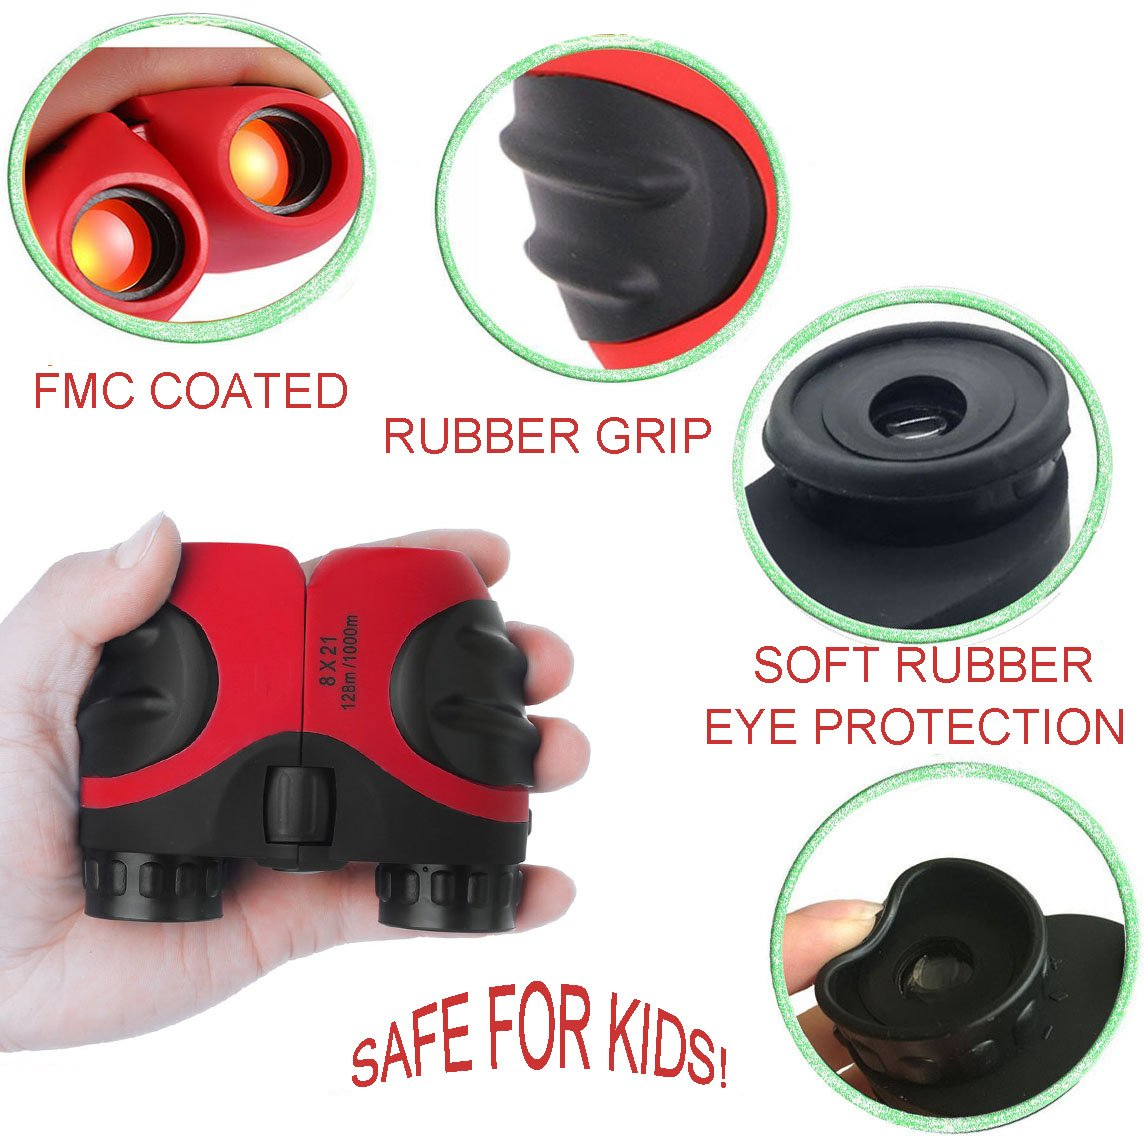 XIYITOY Compact 8x21 Shock Proof Binoculars Toys for 7 8 Year Old Boys, Long Range Kids Walkies Talkies for Outdoor Travel Hunting Boy Gifts Age 3-12 Girls &Gifts Age 3-12(Red) by XIYITOY (Image #4)